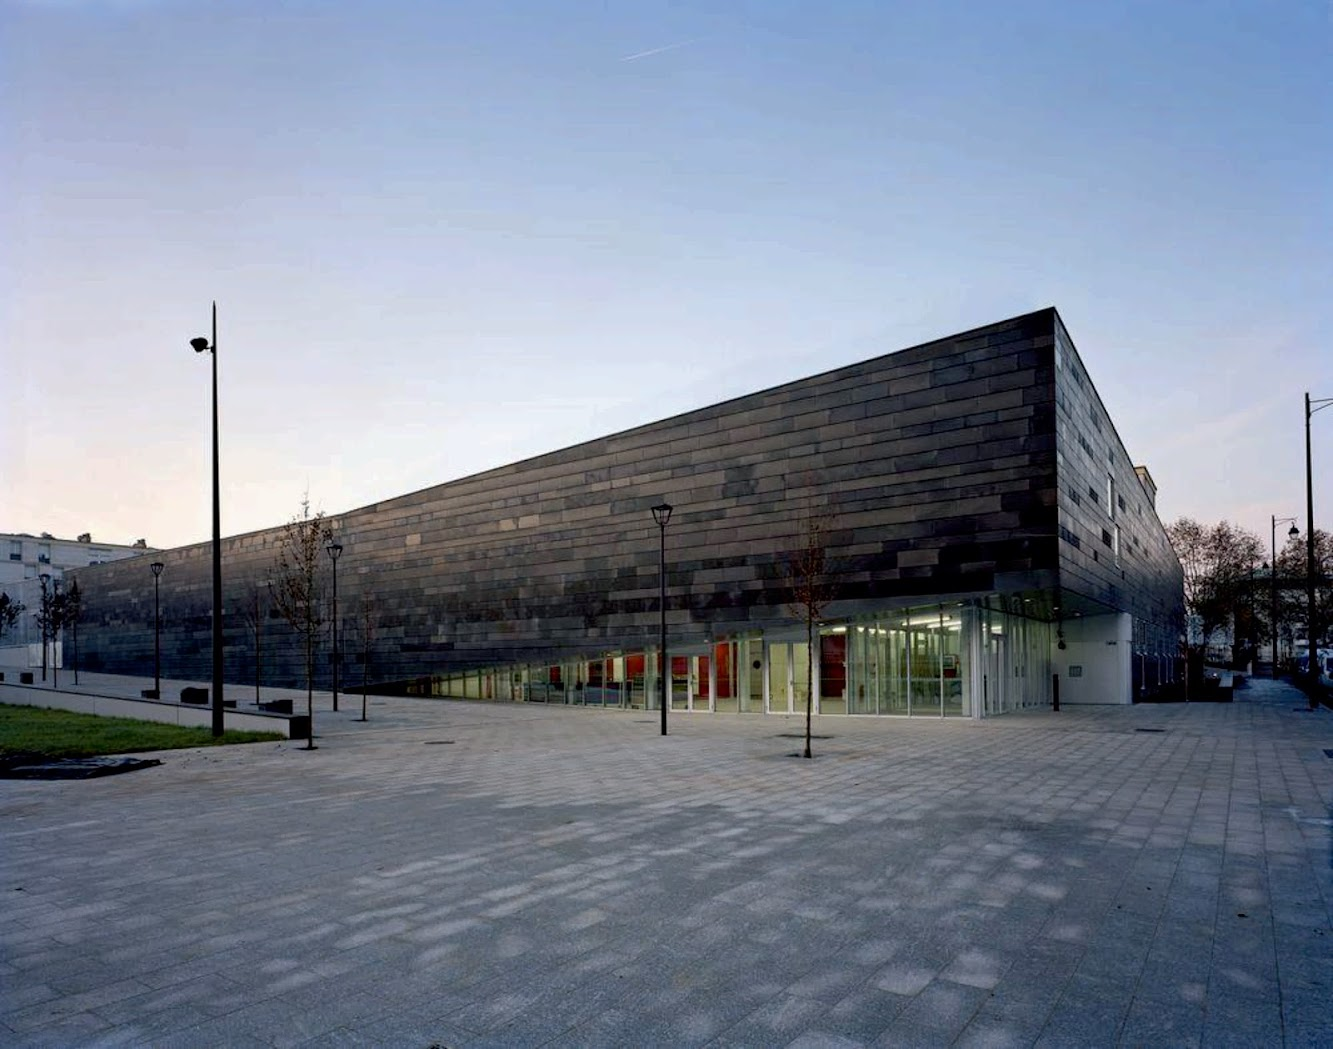 13 Rue d'Alsace Lorraine, 92160 Antony, Francia: Multisports Complex by Archi5